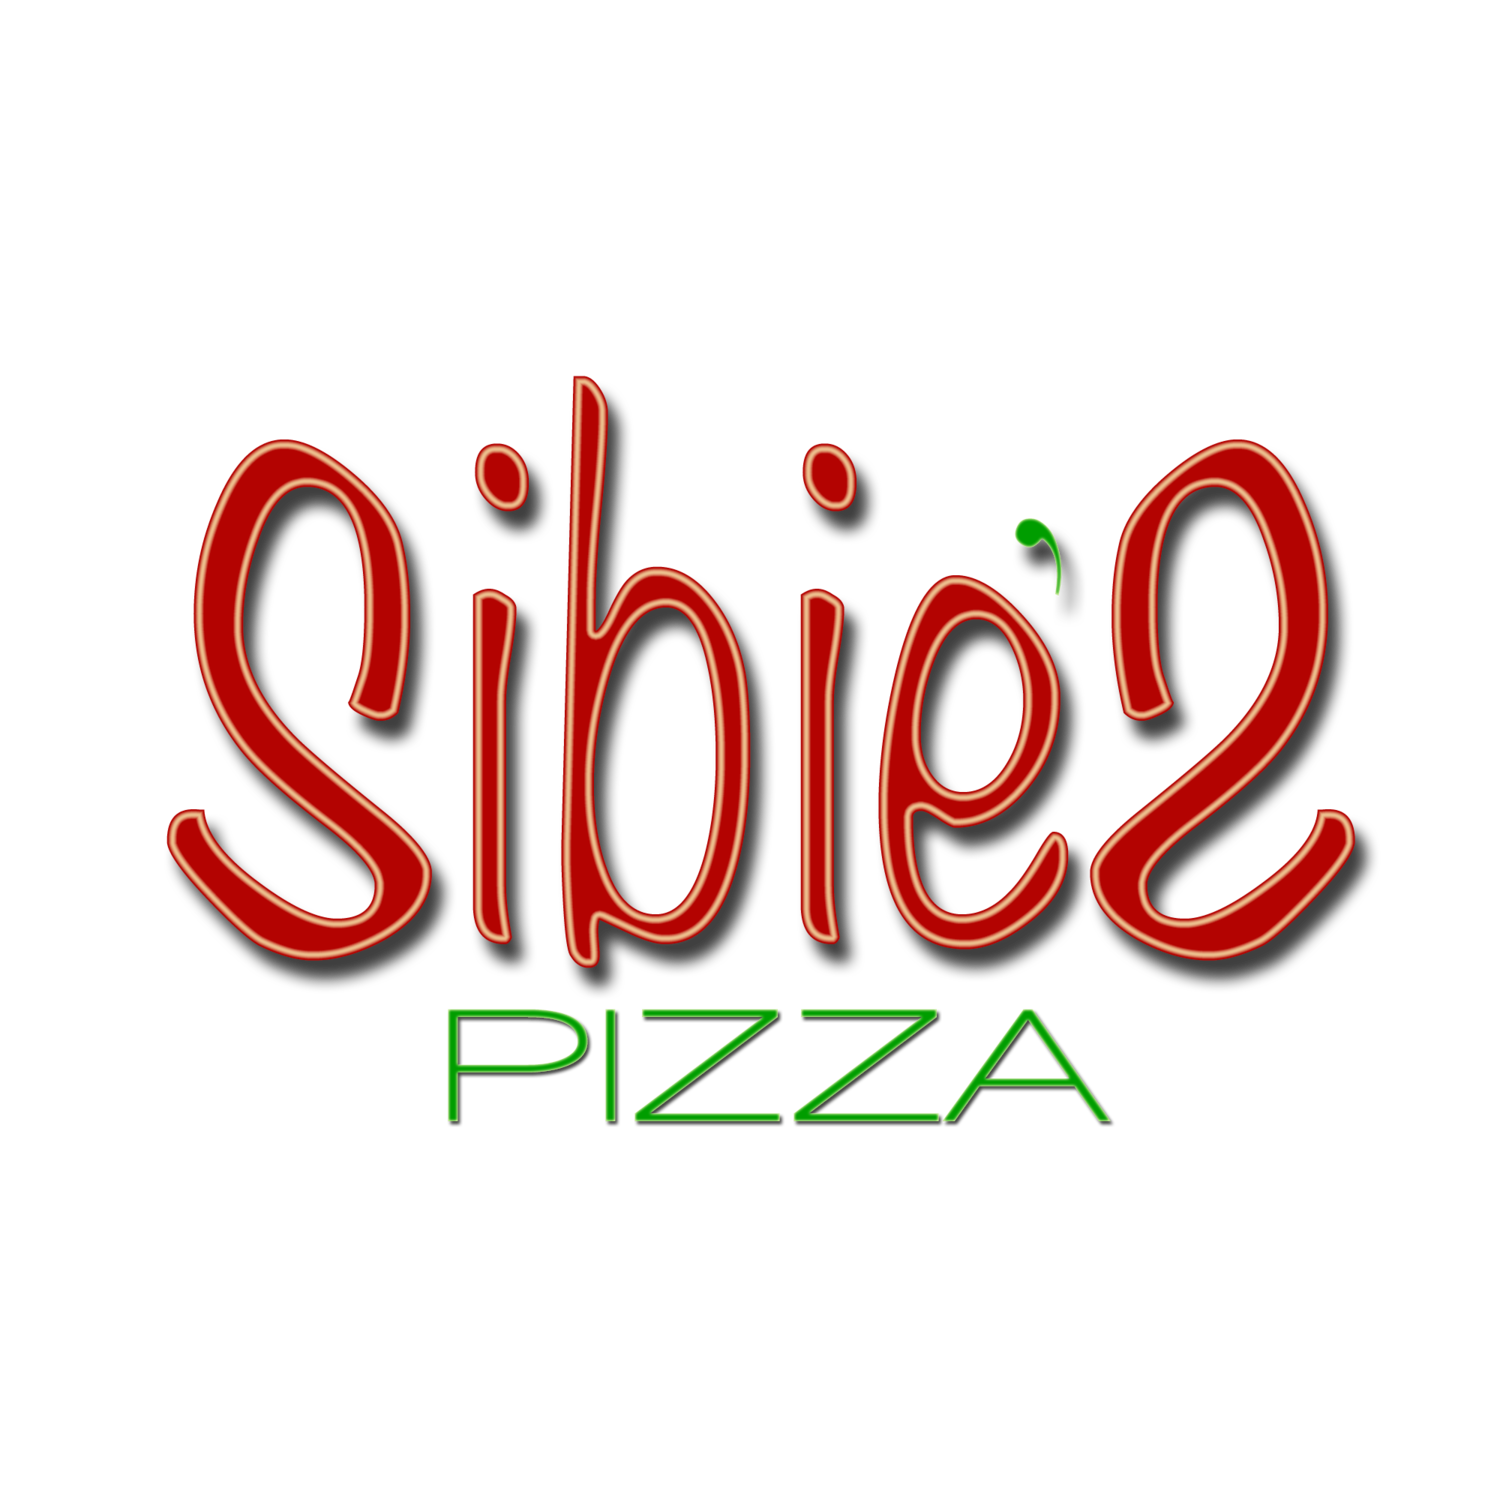 Sibies Pizza in Amherst, MA Pizza Delivery, Take out, and Catering